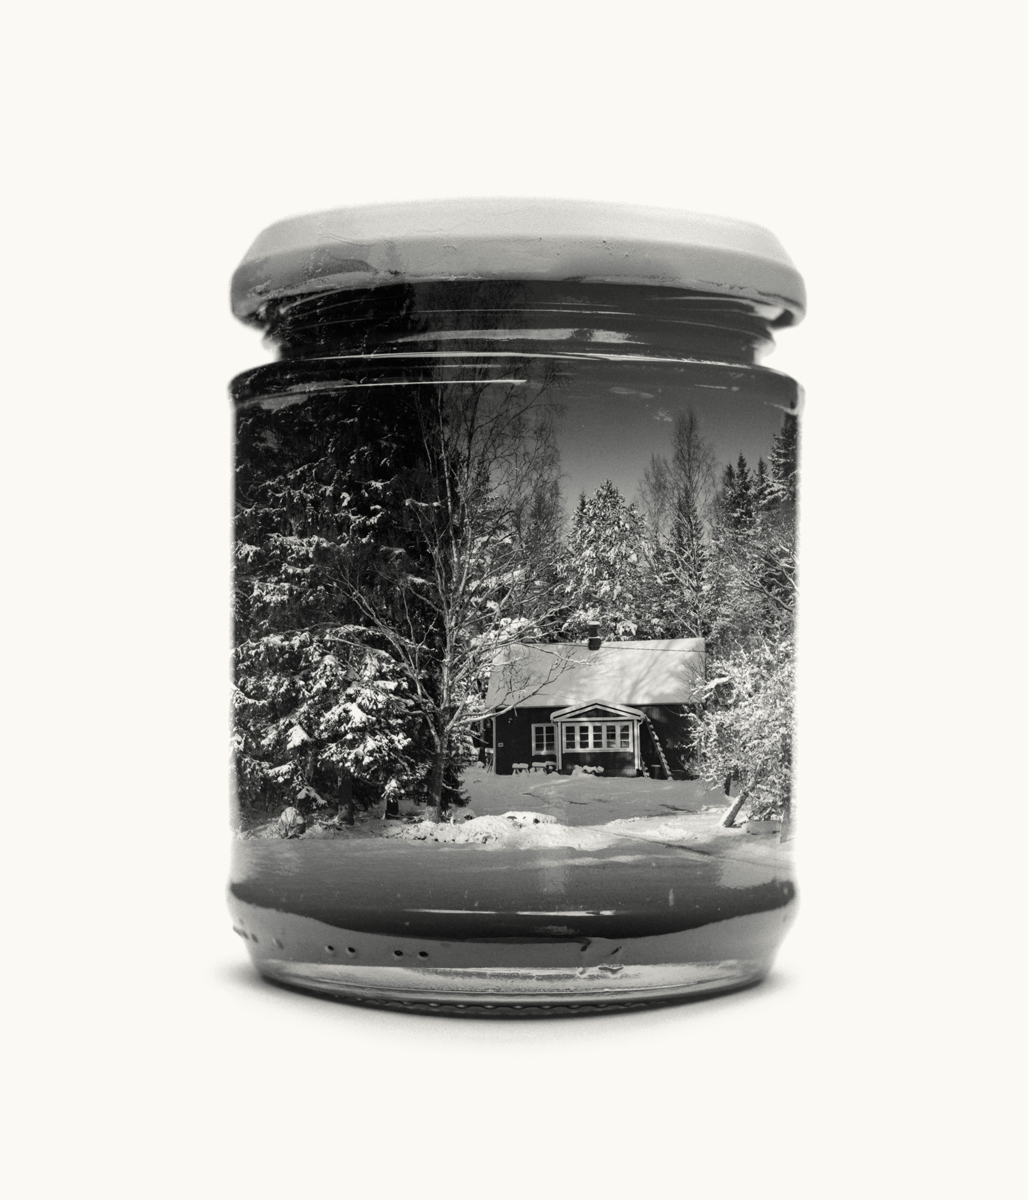 Visual Artwork: Jarred Childhood Home (Medium) by artist and creator Christoffer Relander